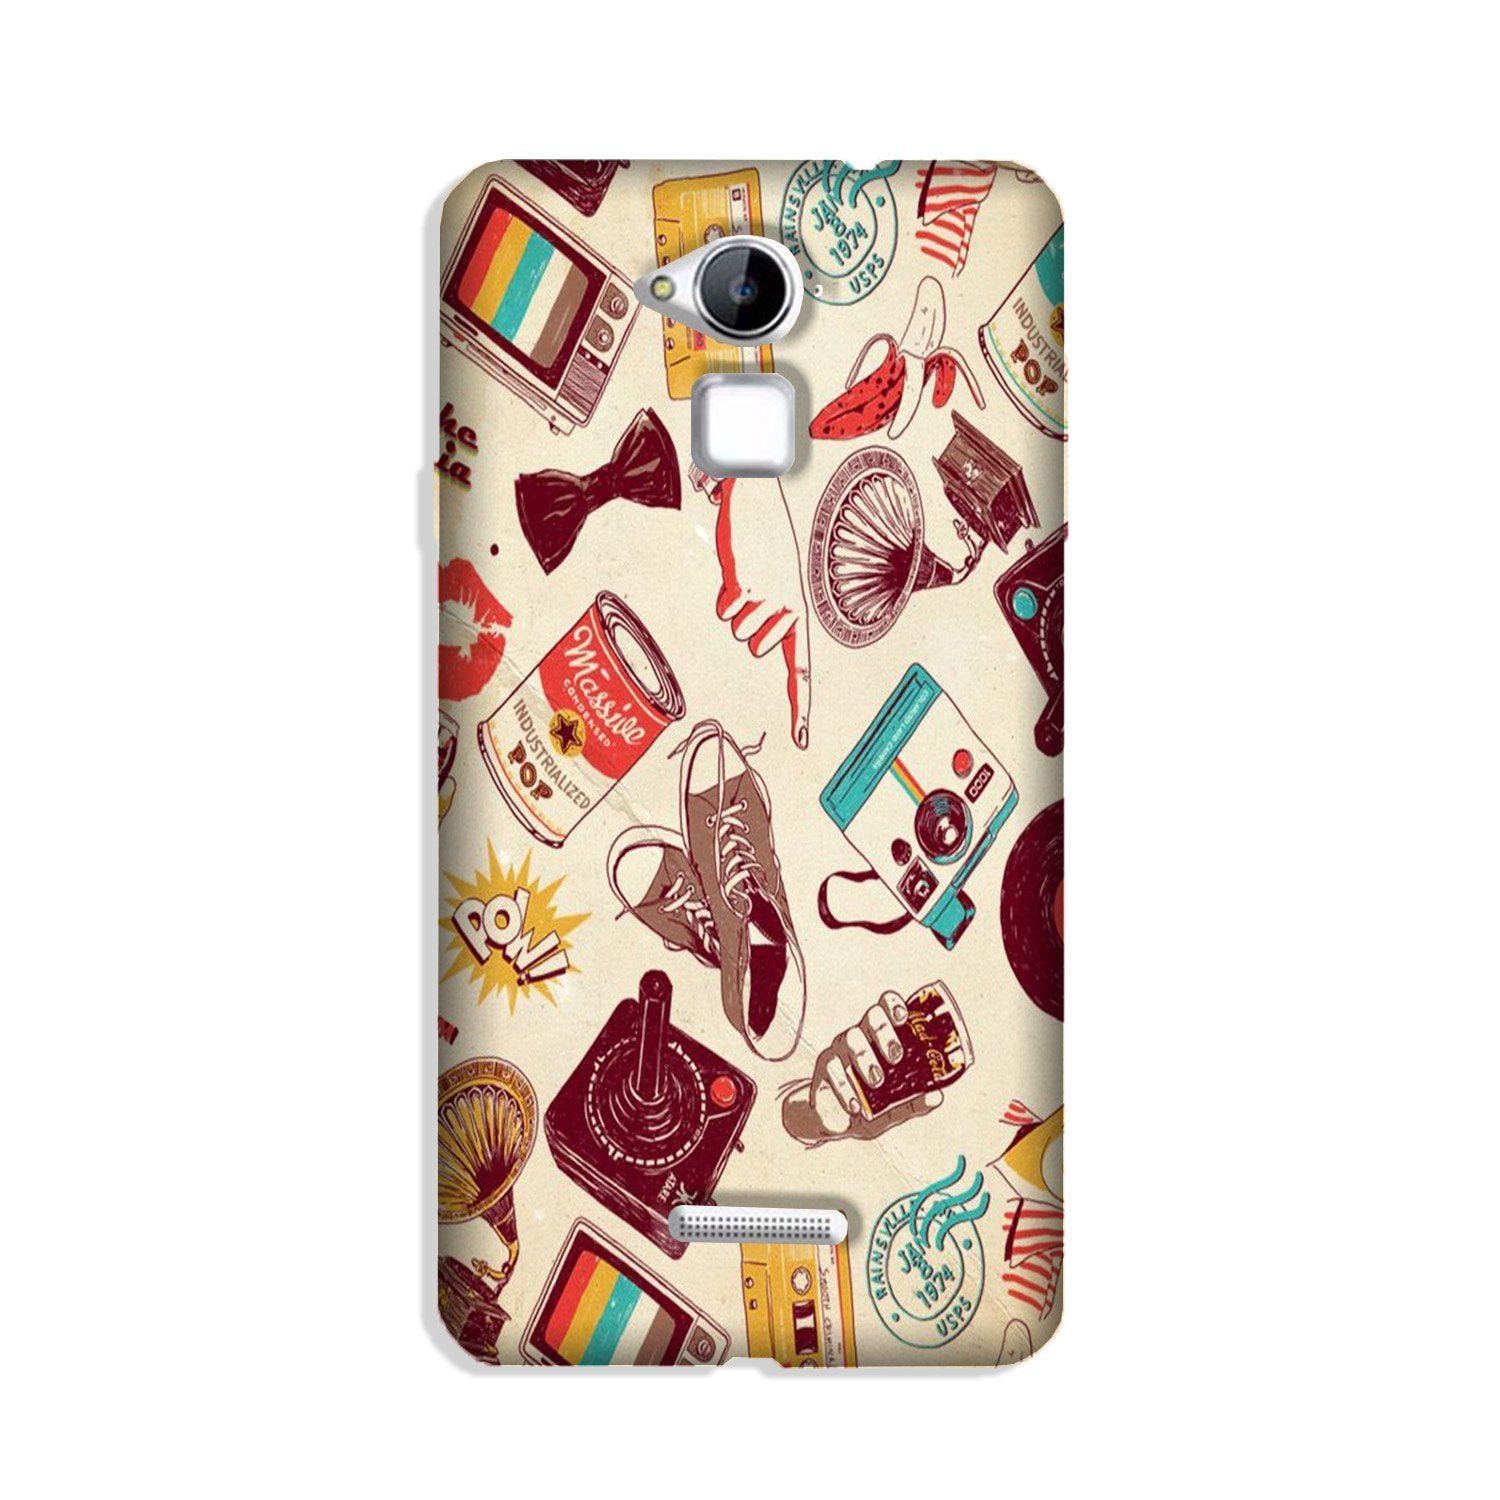 Vintage Case for Coolpad Note 3